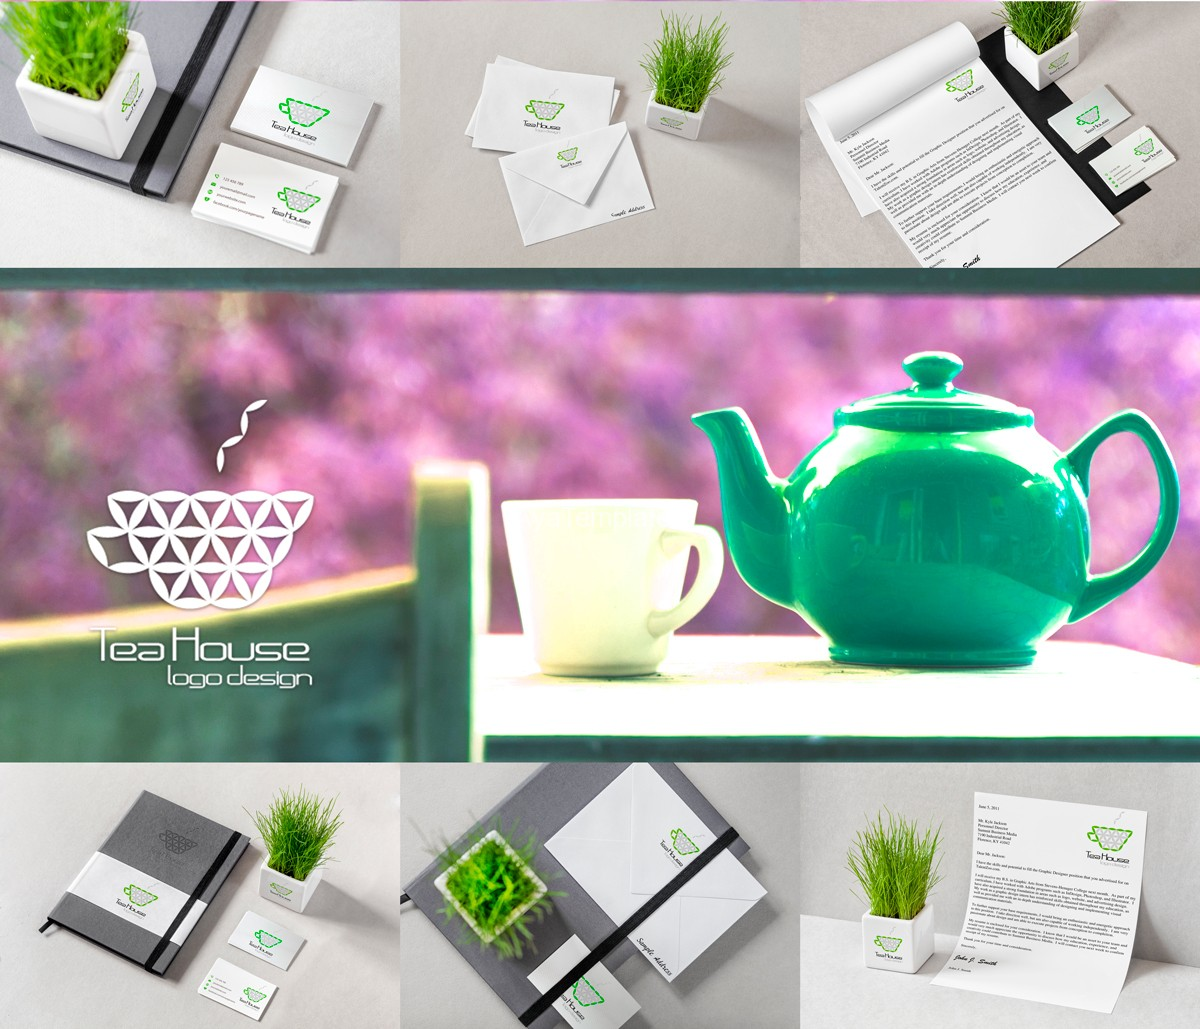 Tea-House-logo-design-brand-identity-mockup-pinterest